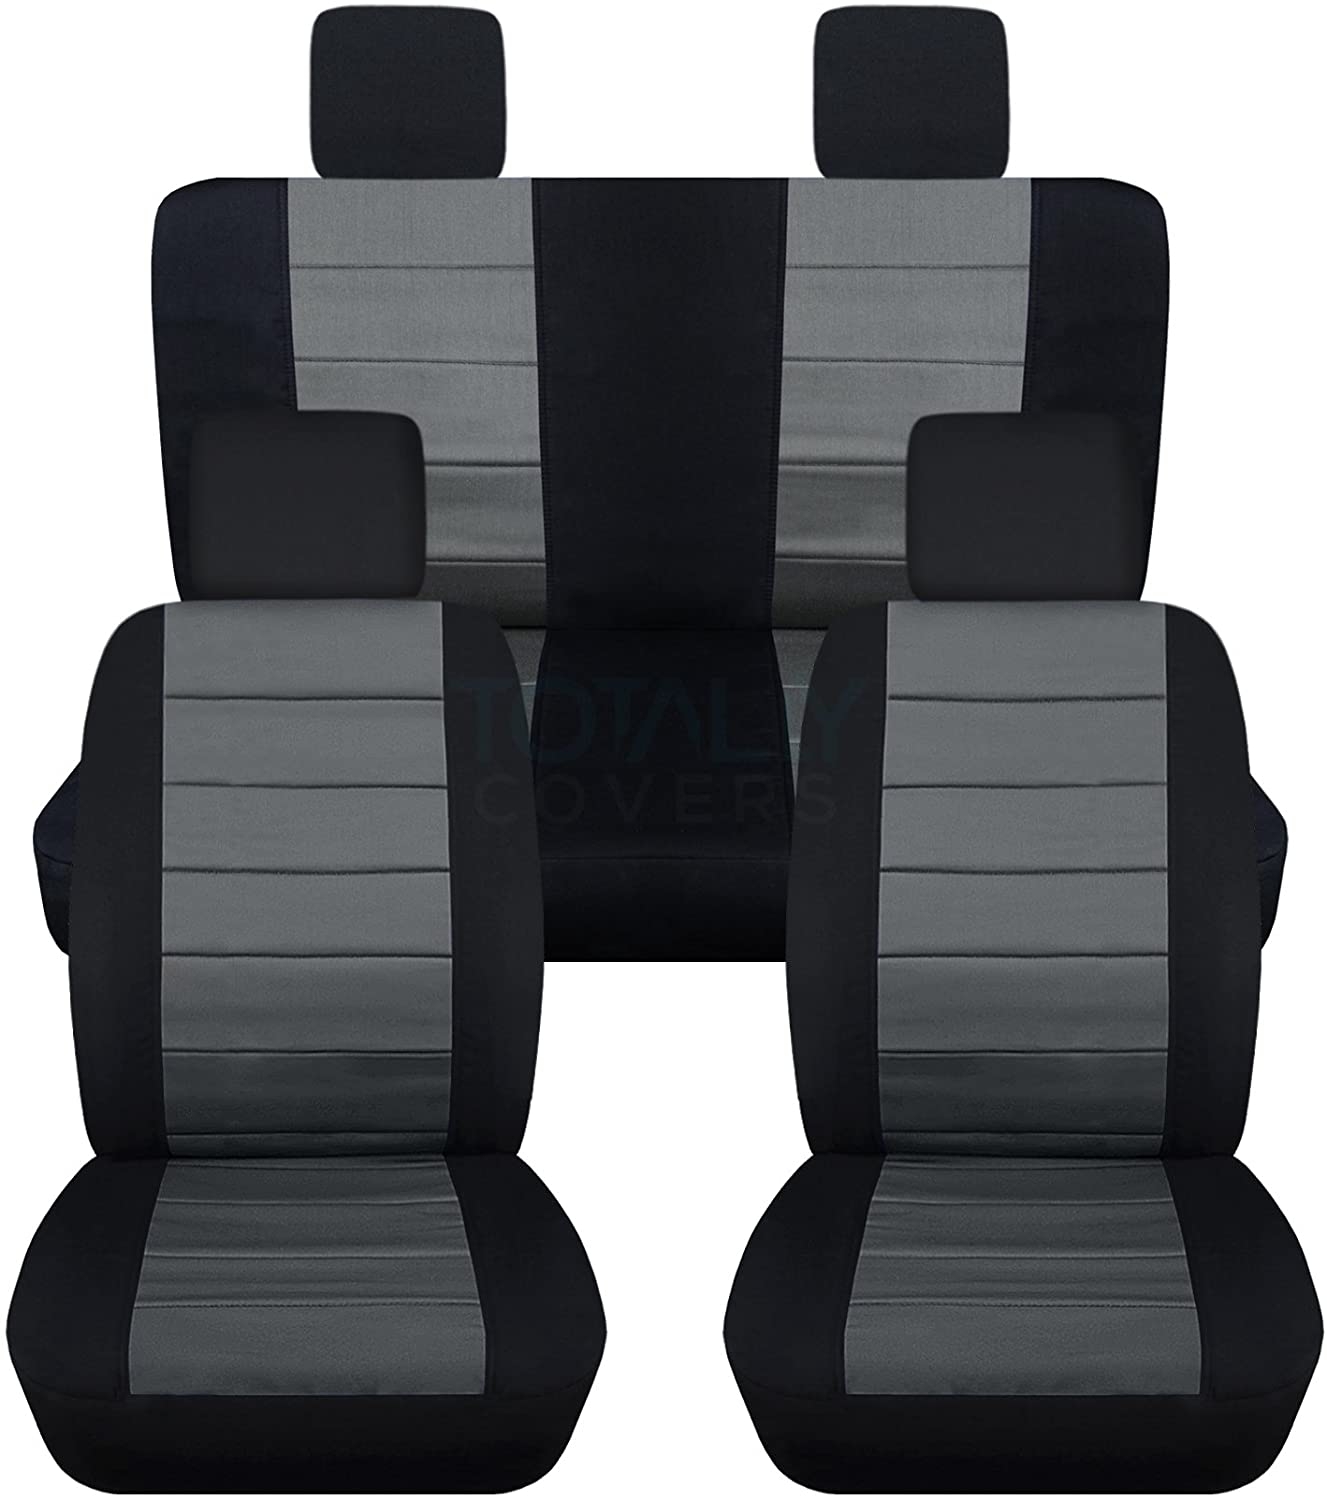 Totally Covers Compatible with 2007-2010 Jeep Wrangler JK Seat Covers: Black & Charcoal - Full Set: Front & Rear (23 Colors) 2-Door/4-Door Complete Back Solid/Split Bench